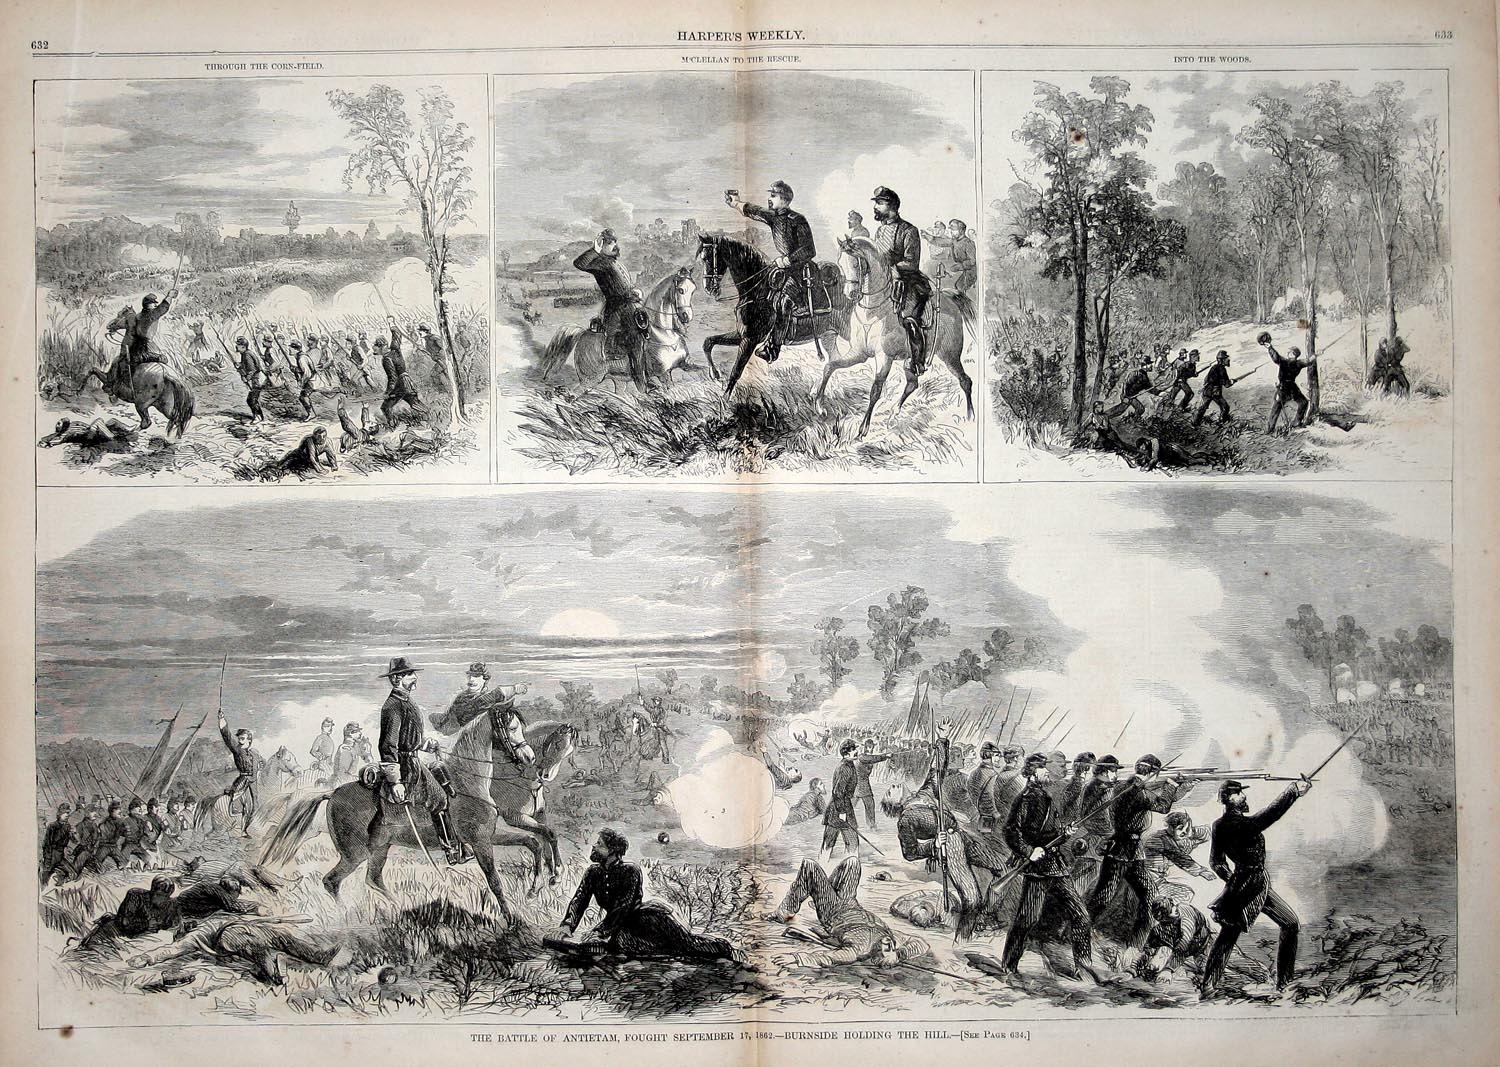 the battle of antietam Battle of antietam: summary of the battle of antietam, a decisive engagement in  september 1862 in the american civil war that halted the.